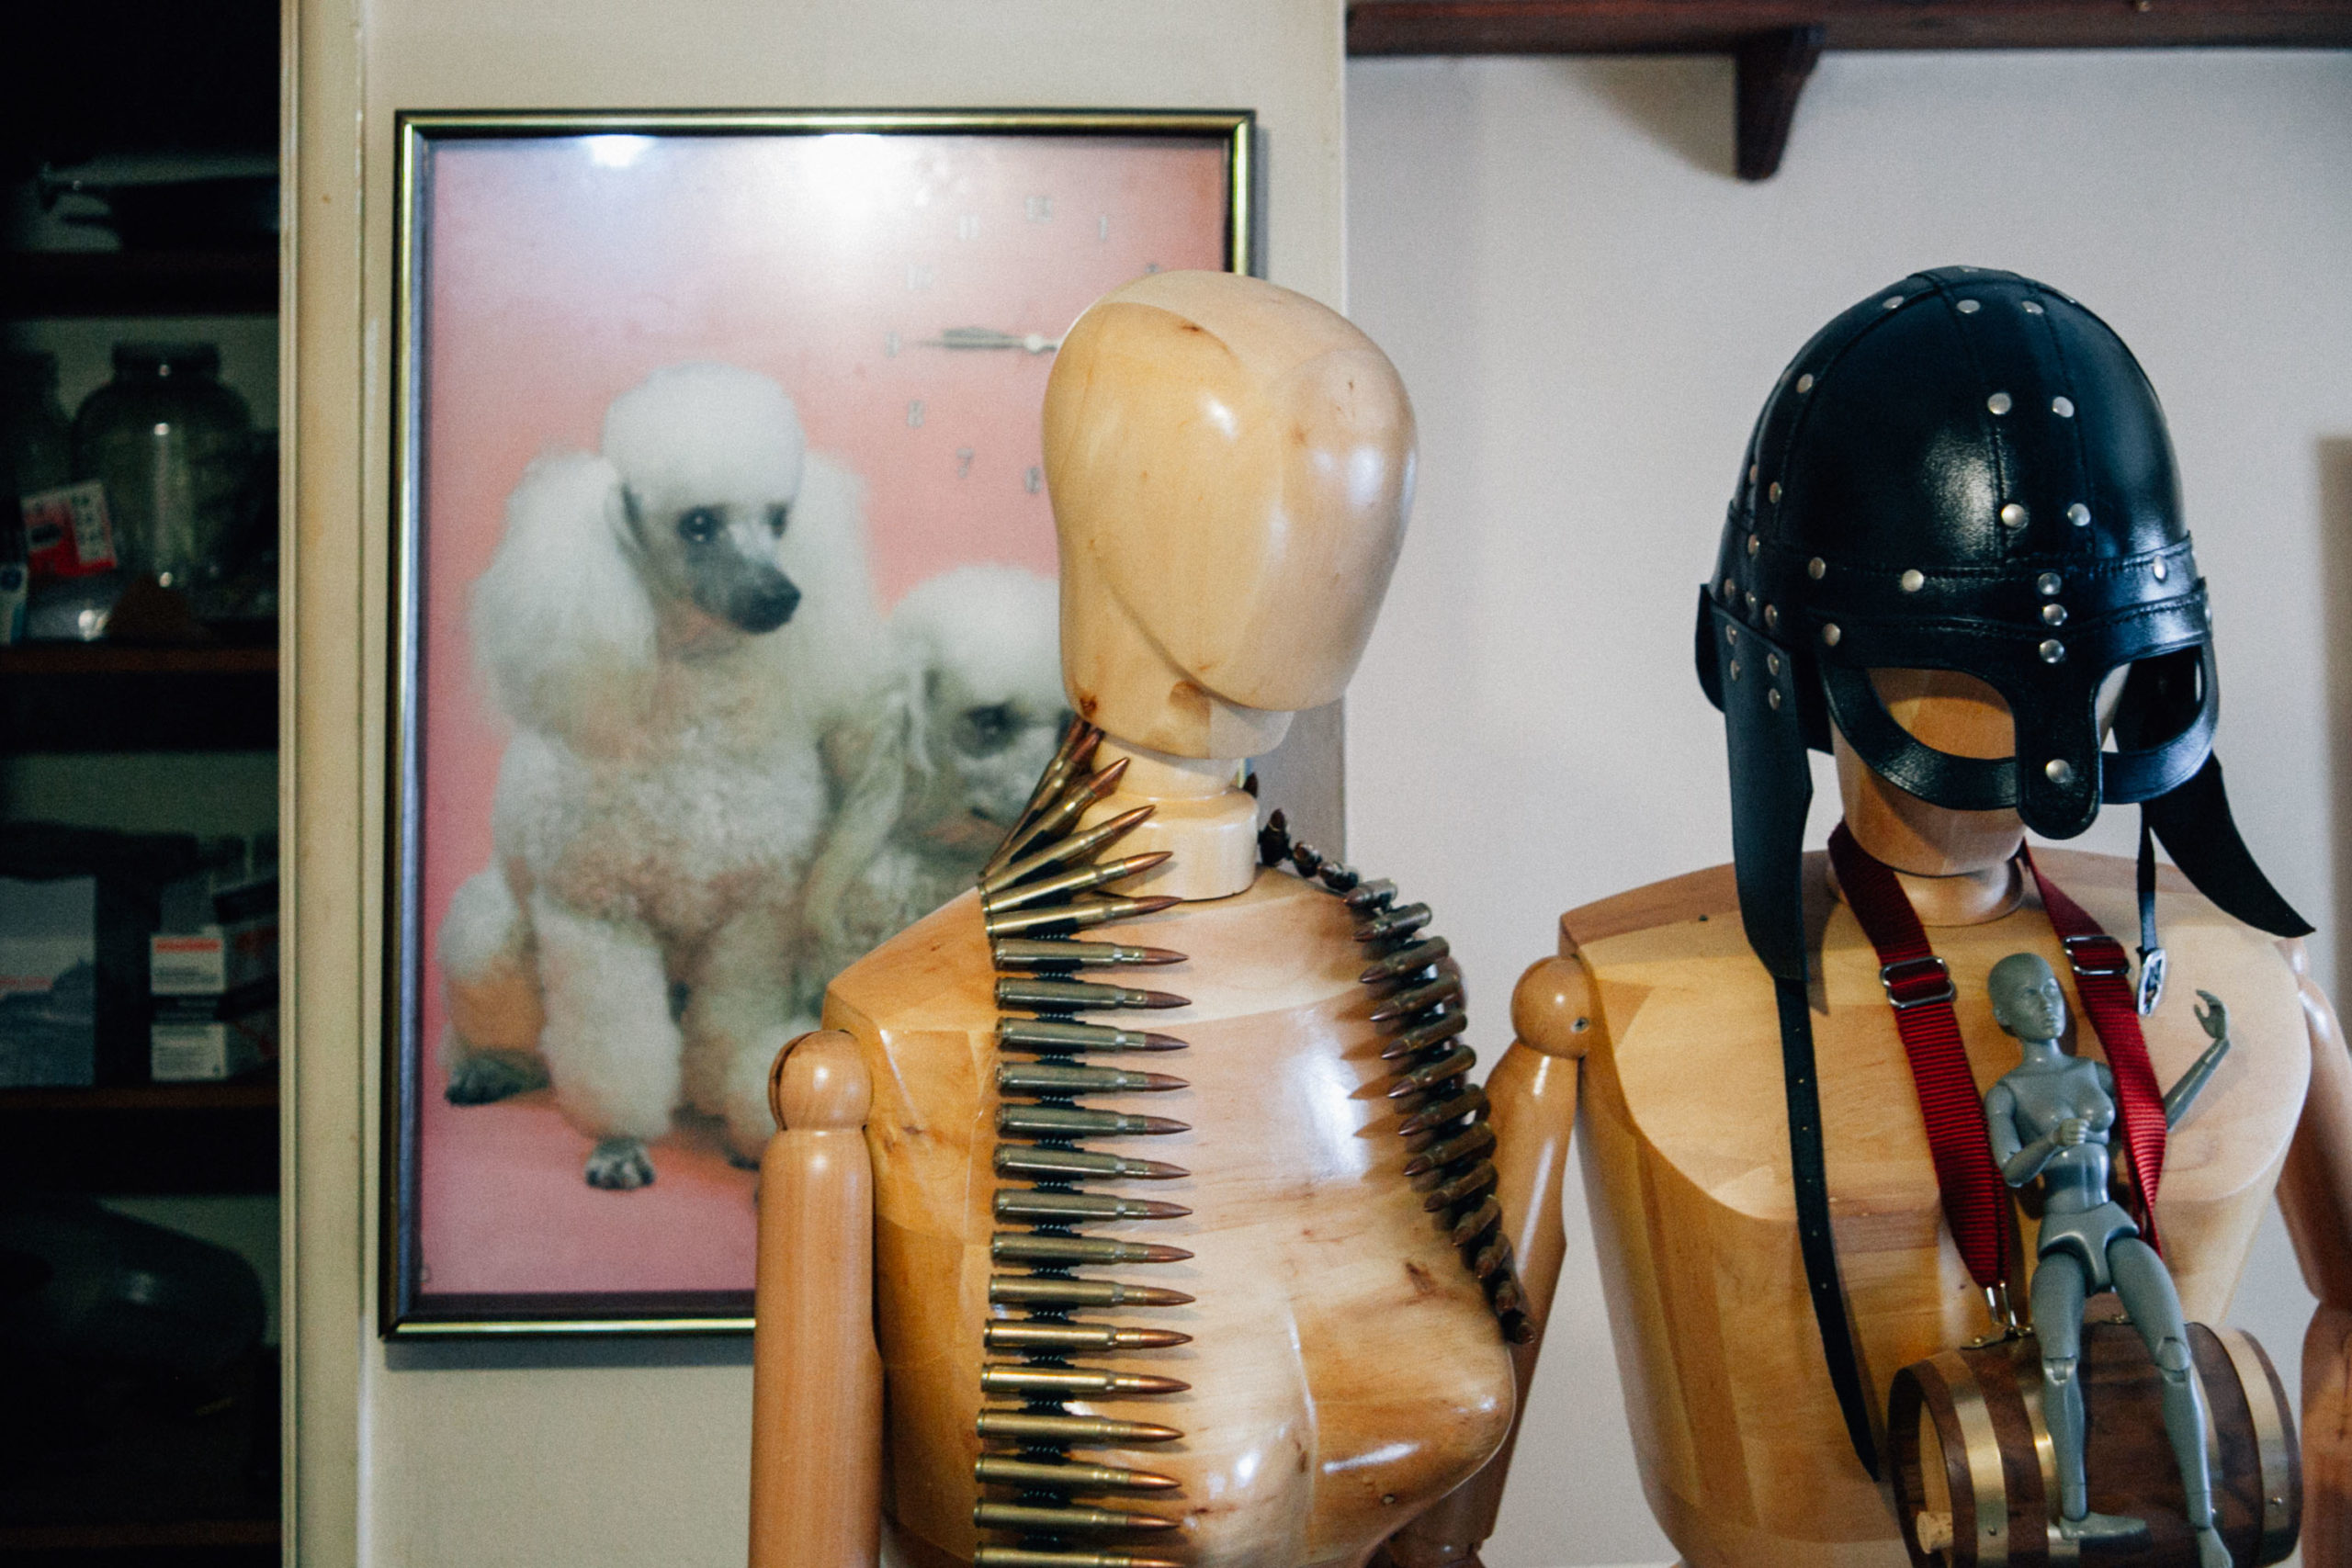 Oddities in Jim's dad's house